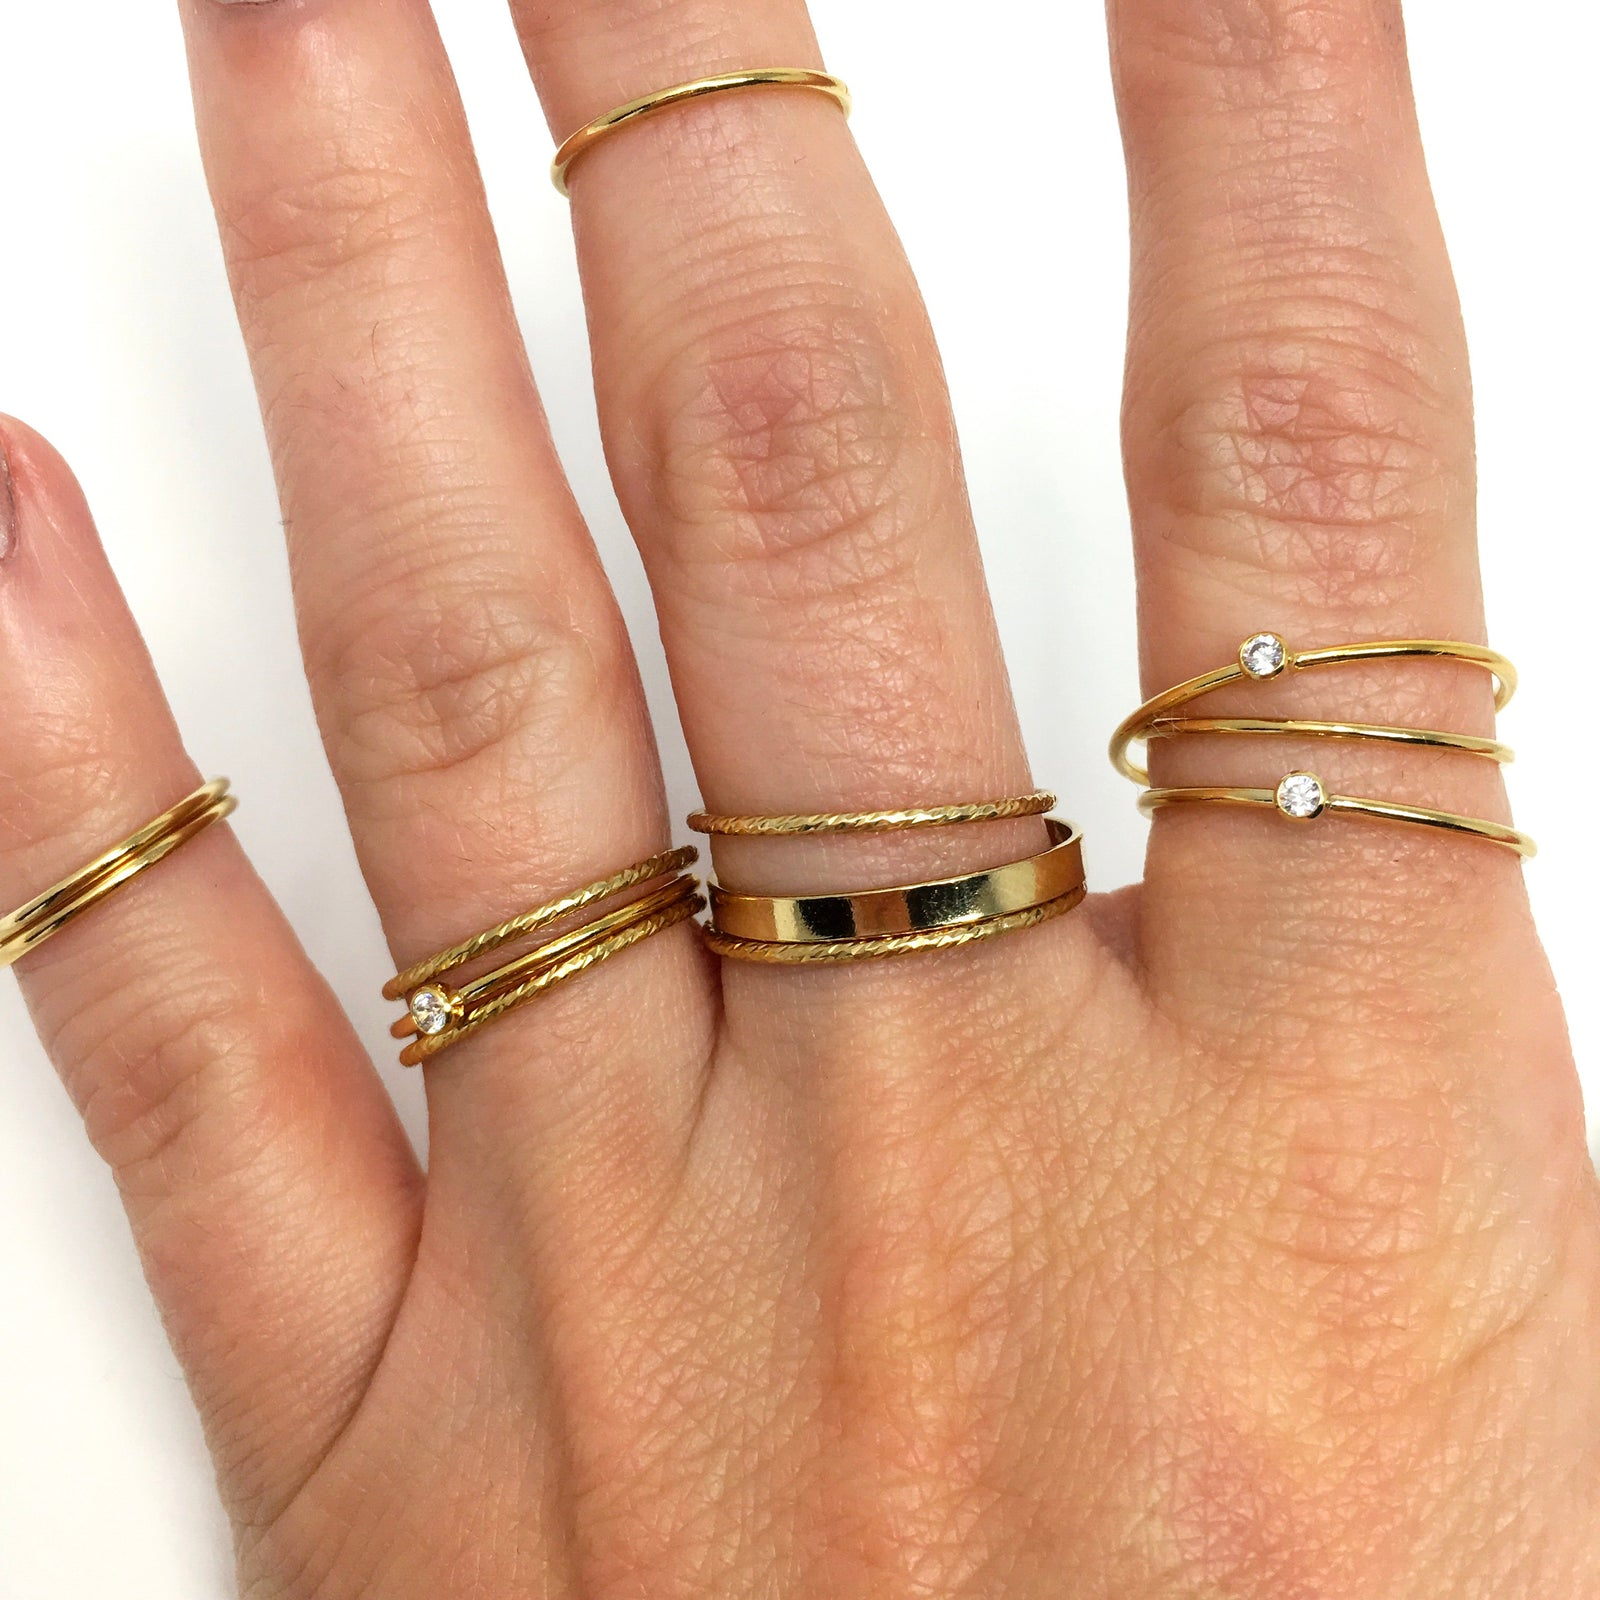 14K GOLD-FILLED 2.25MM WIDE FLAT STACKING RINGS | SIZE OPTIONS